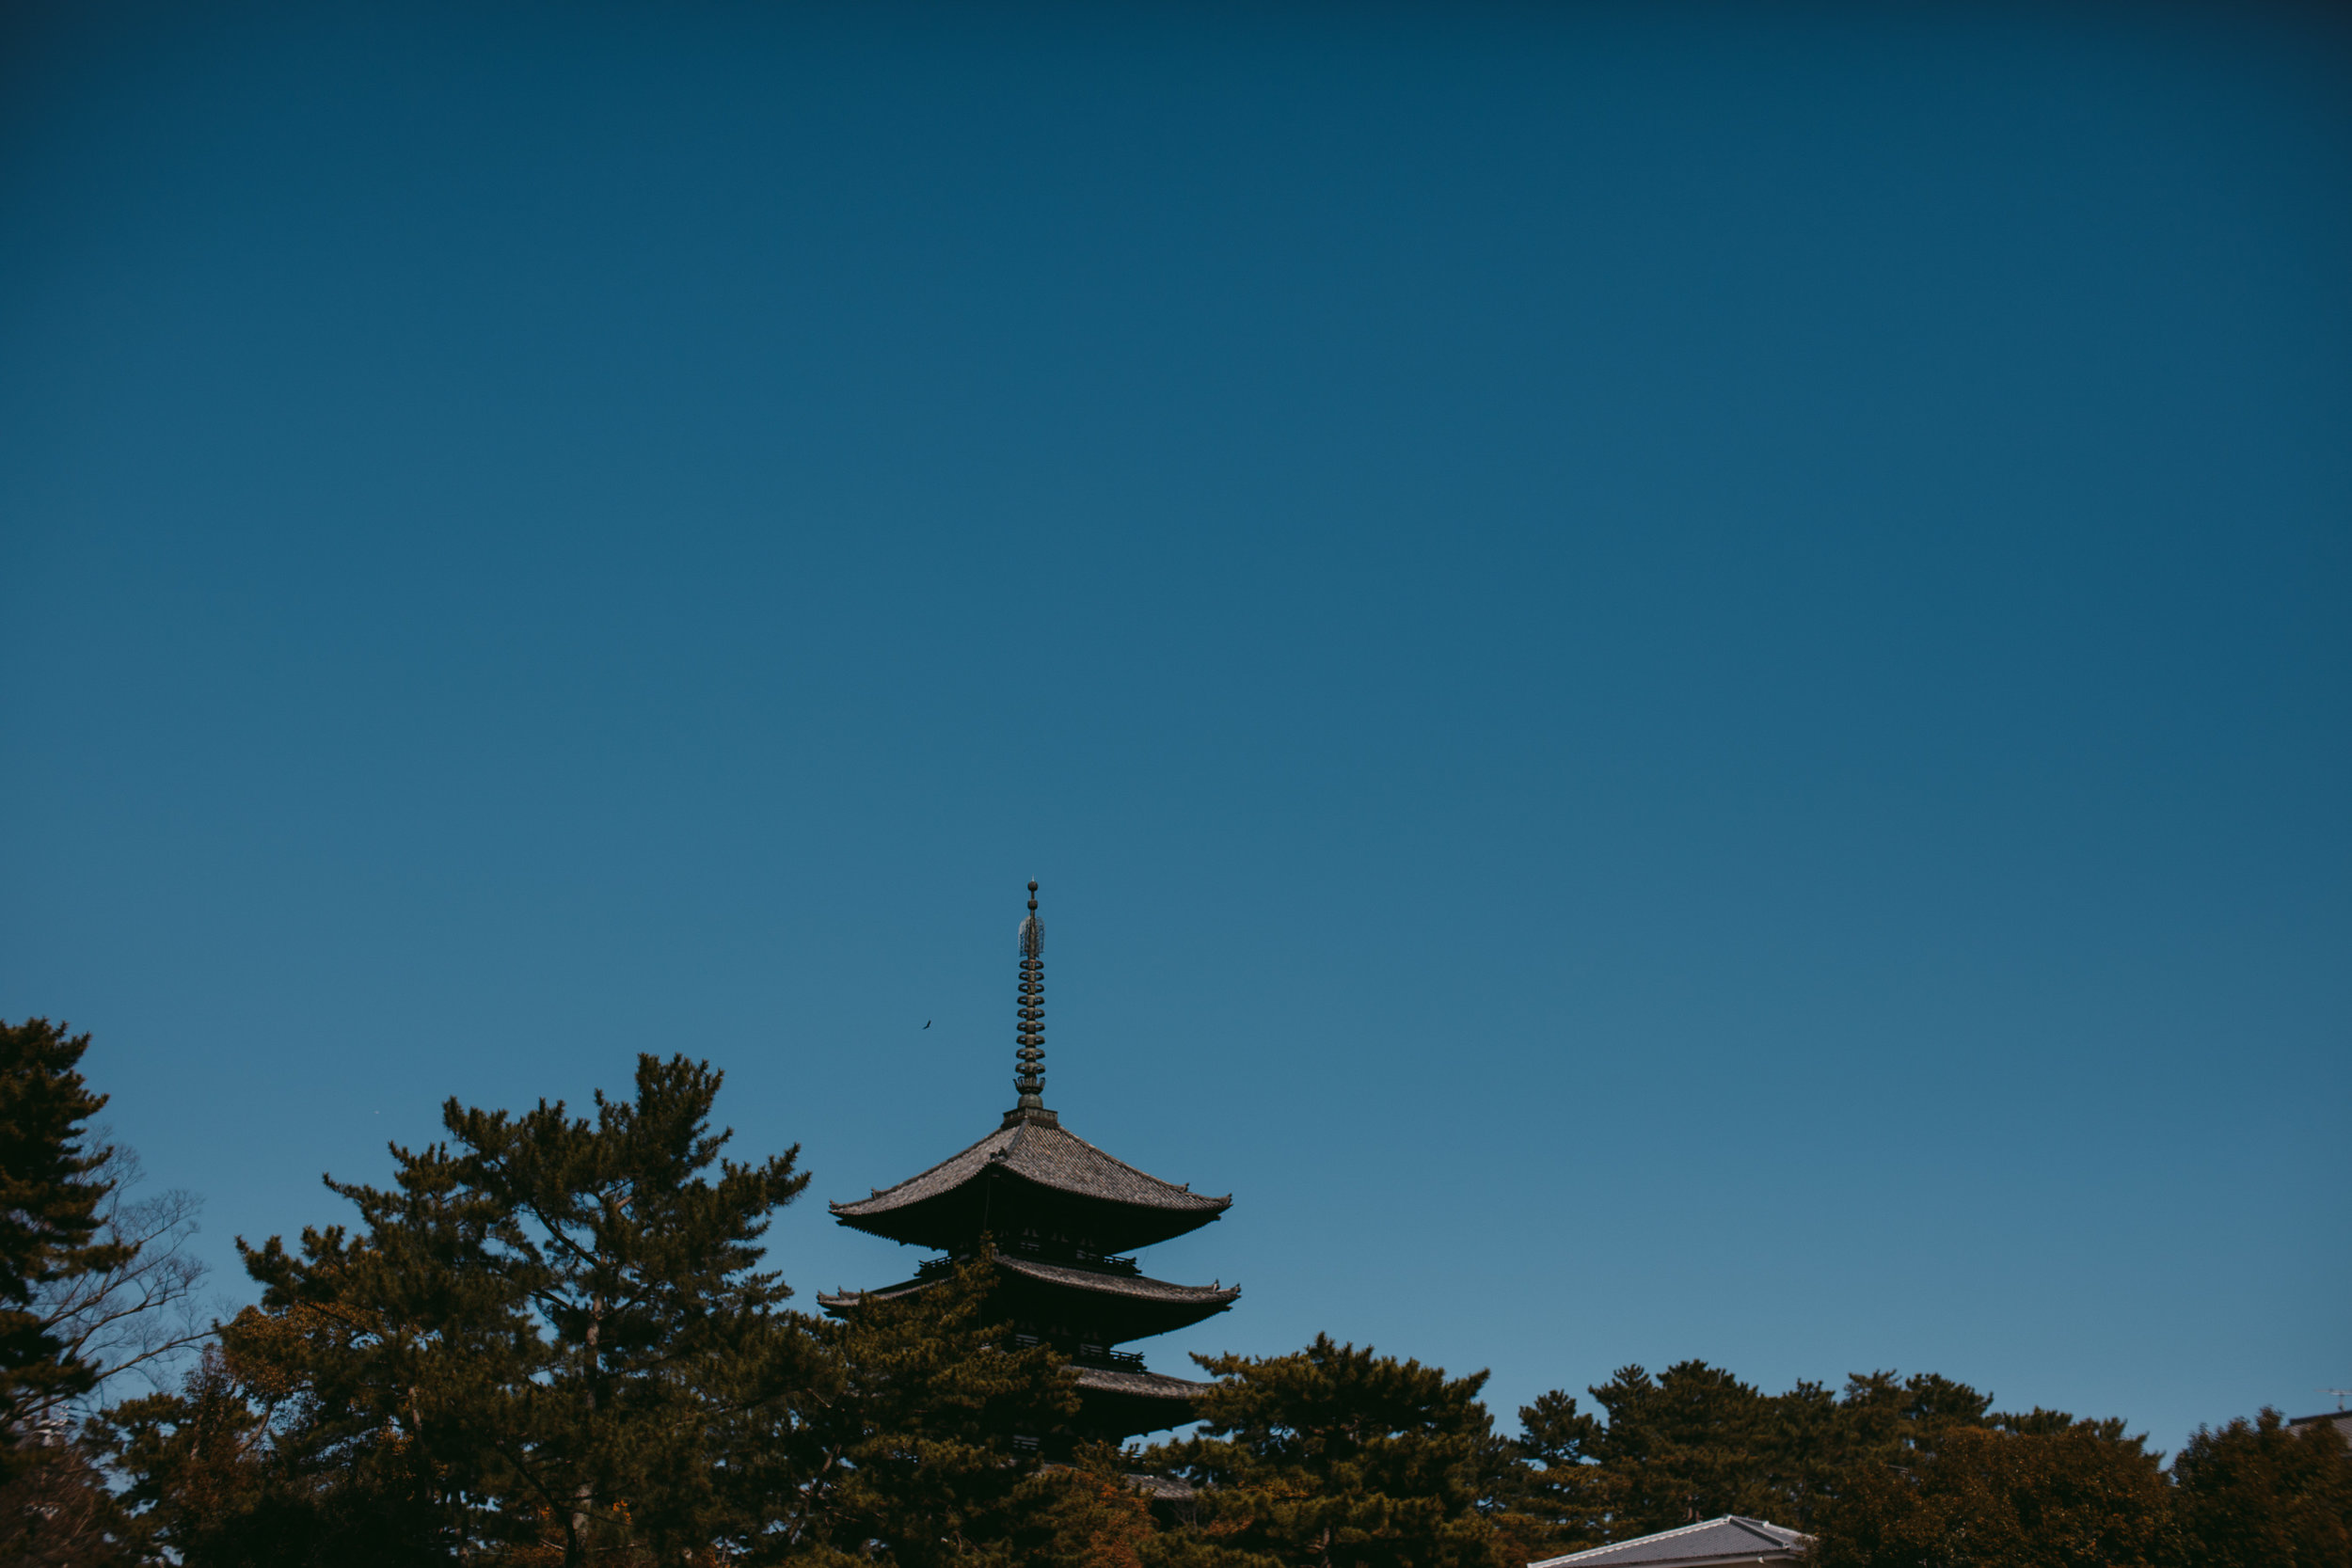 MikeSeehagel-commercial-lifestyle-travel-photography-Japan-77.jpg